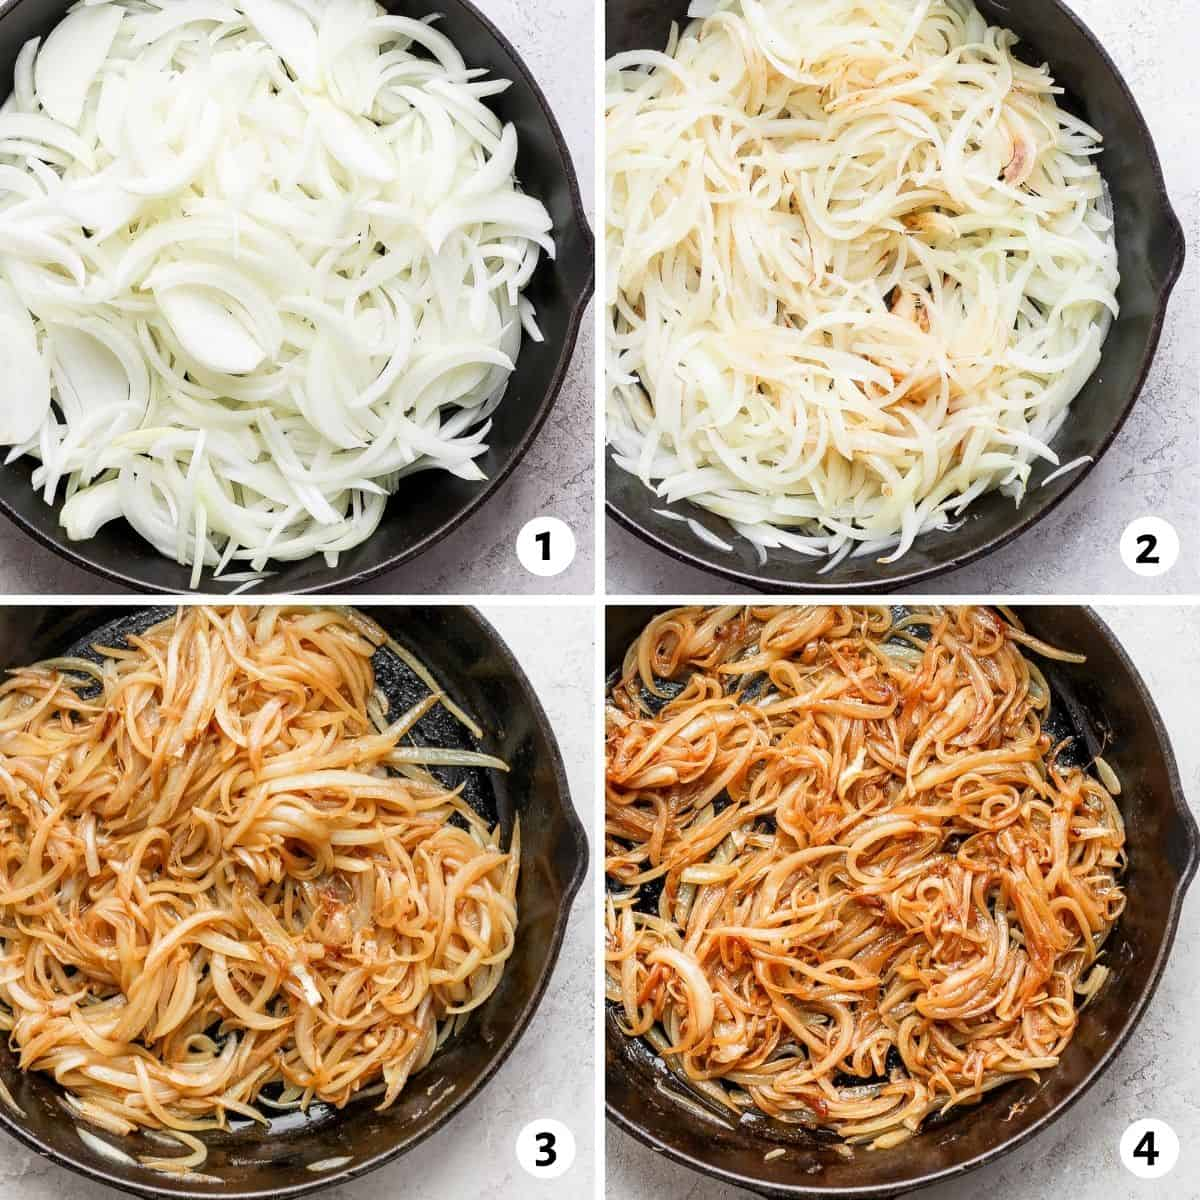 4 images to show how the onions start and what they look like at each stage